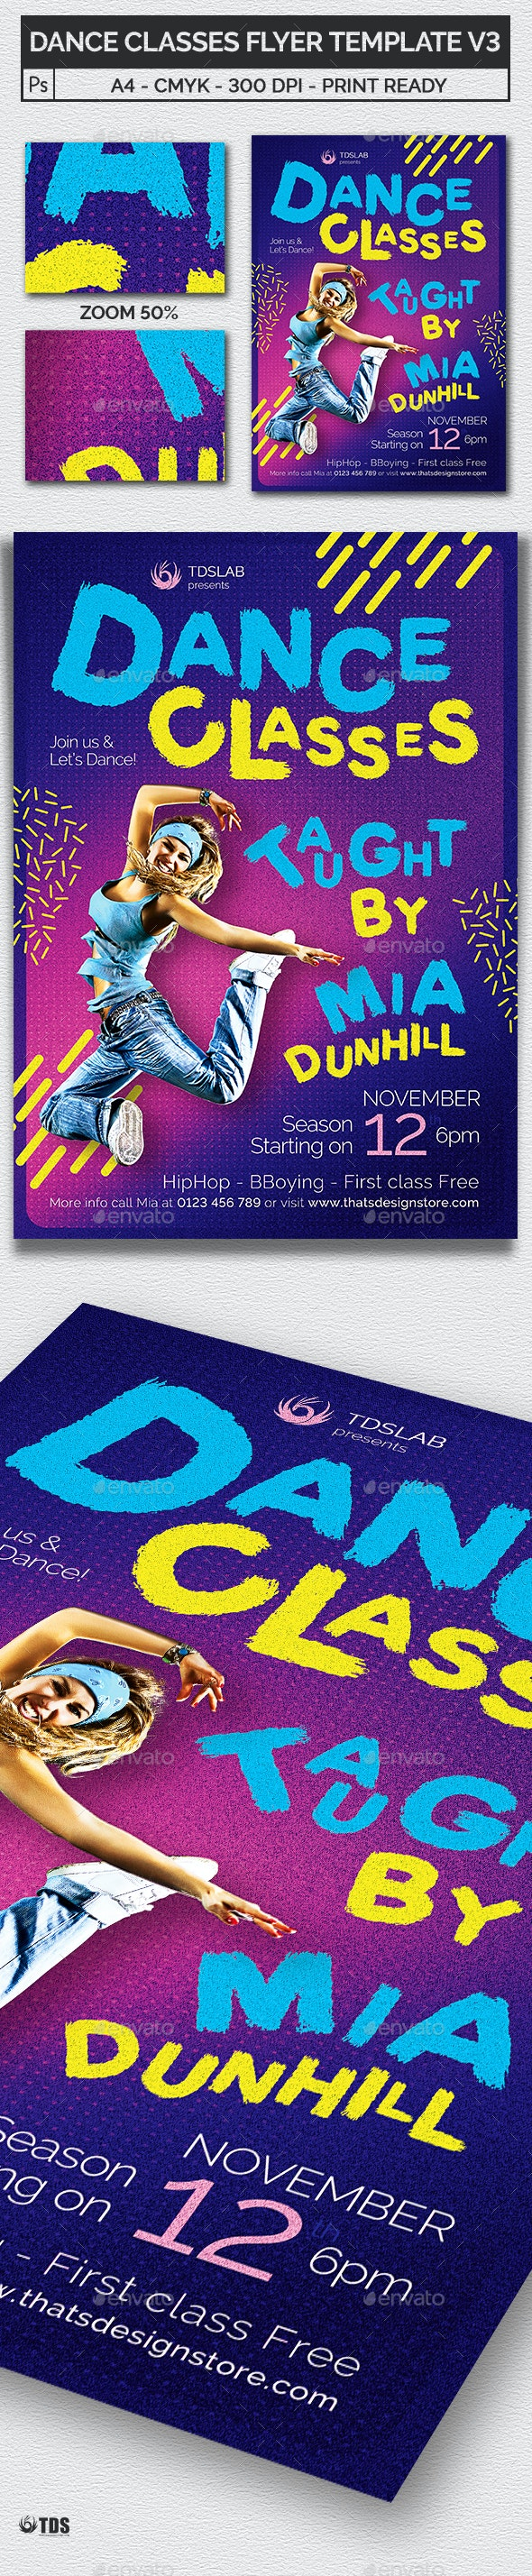 Dance Classes Flyer Template V3 - Sports Events